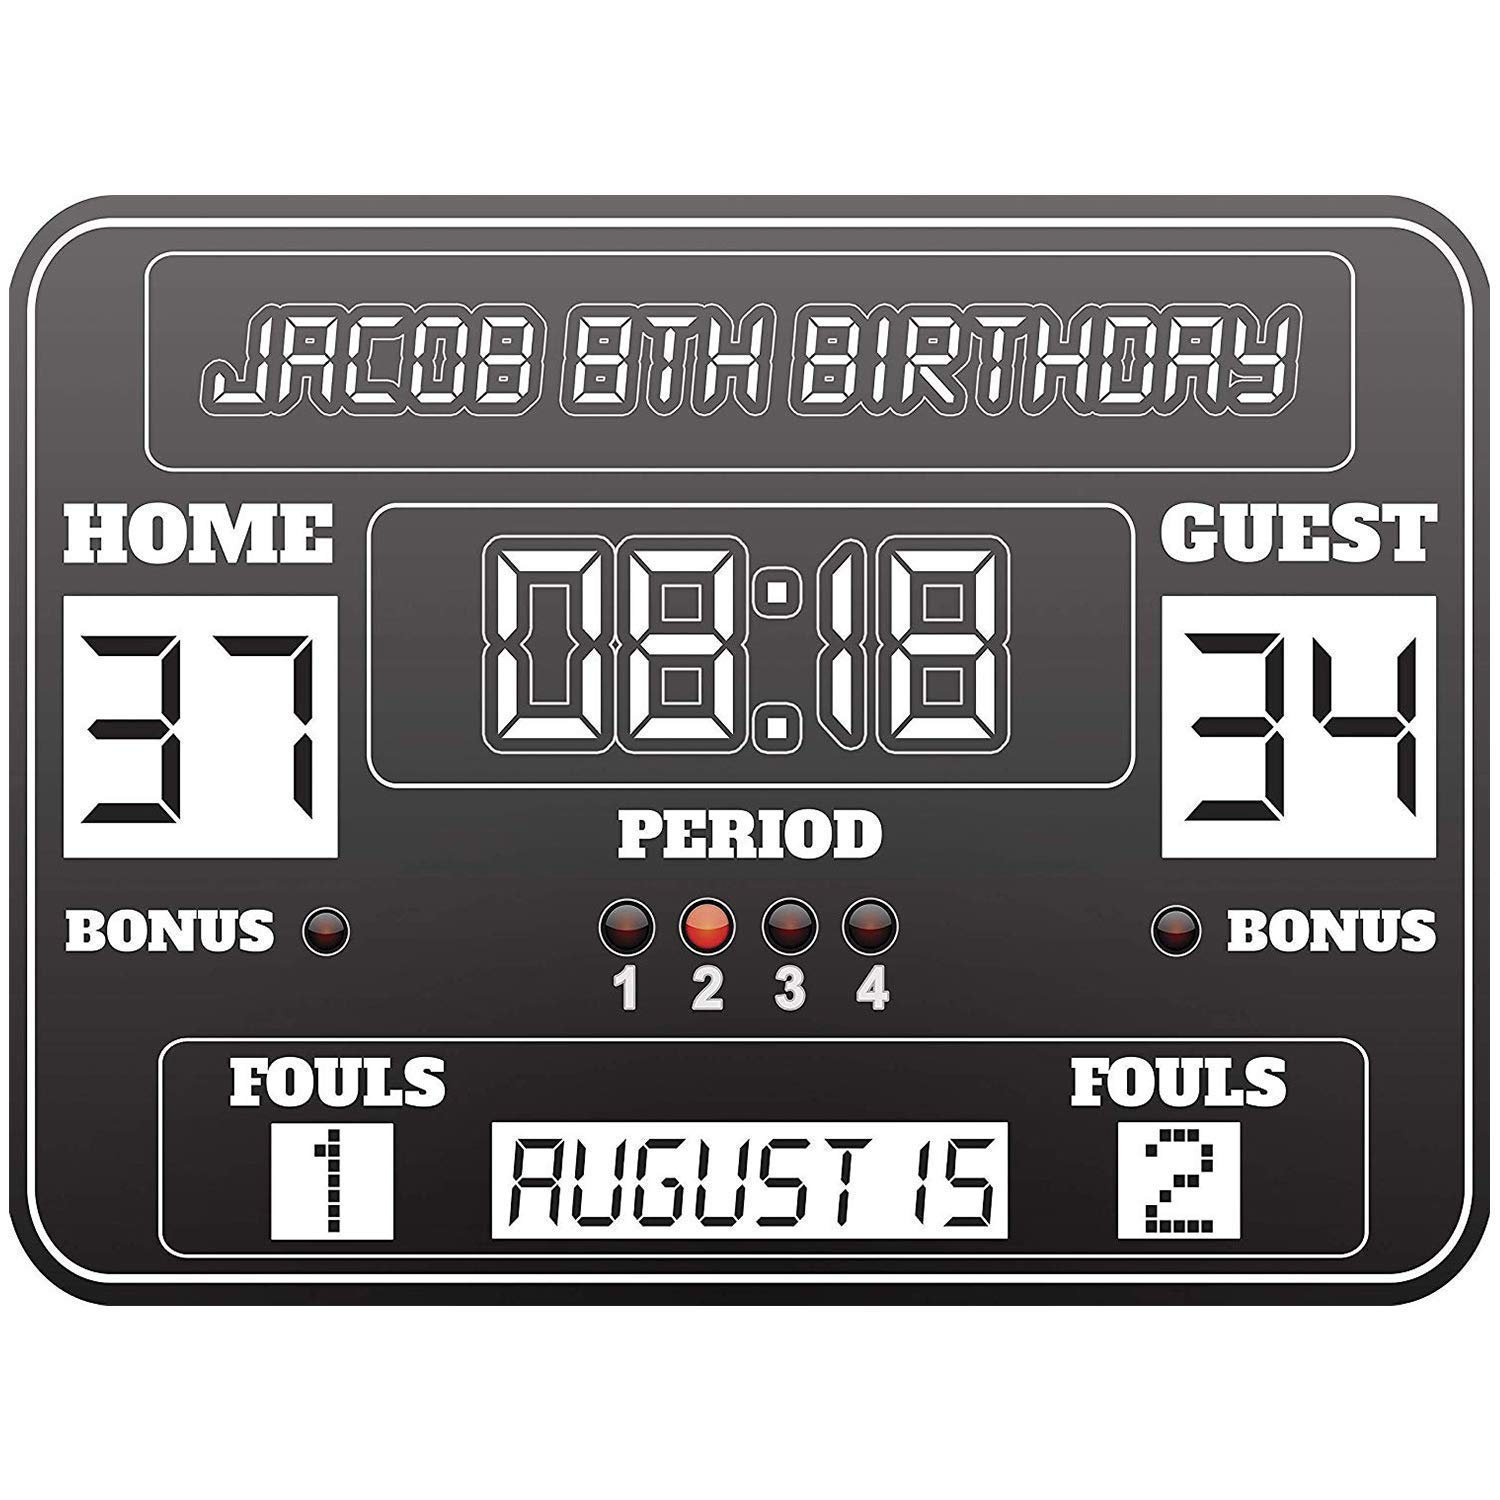 Basketball Birthday Party Banner Size 24x18, 36x24, 48x24 and 48x36 Basketball Scoreboard,Birthday Party Poster, Personalized Basketball Scoreboard, Scoreboard, Kids Party, Party Supply Poster Print